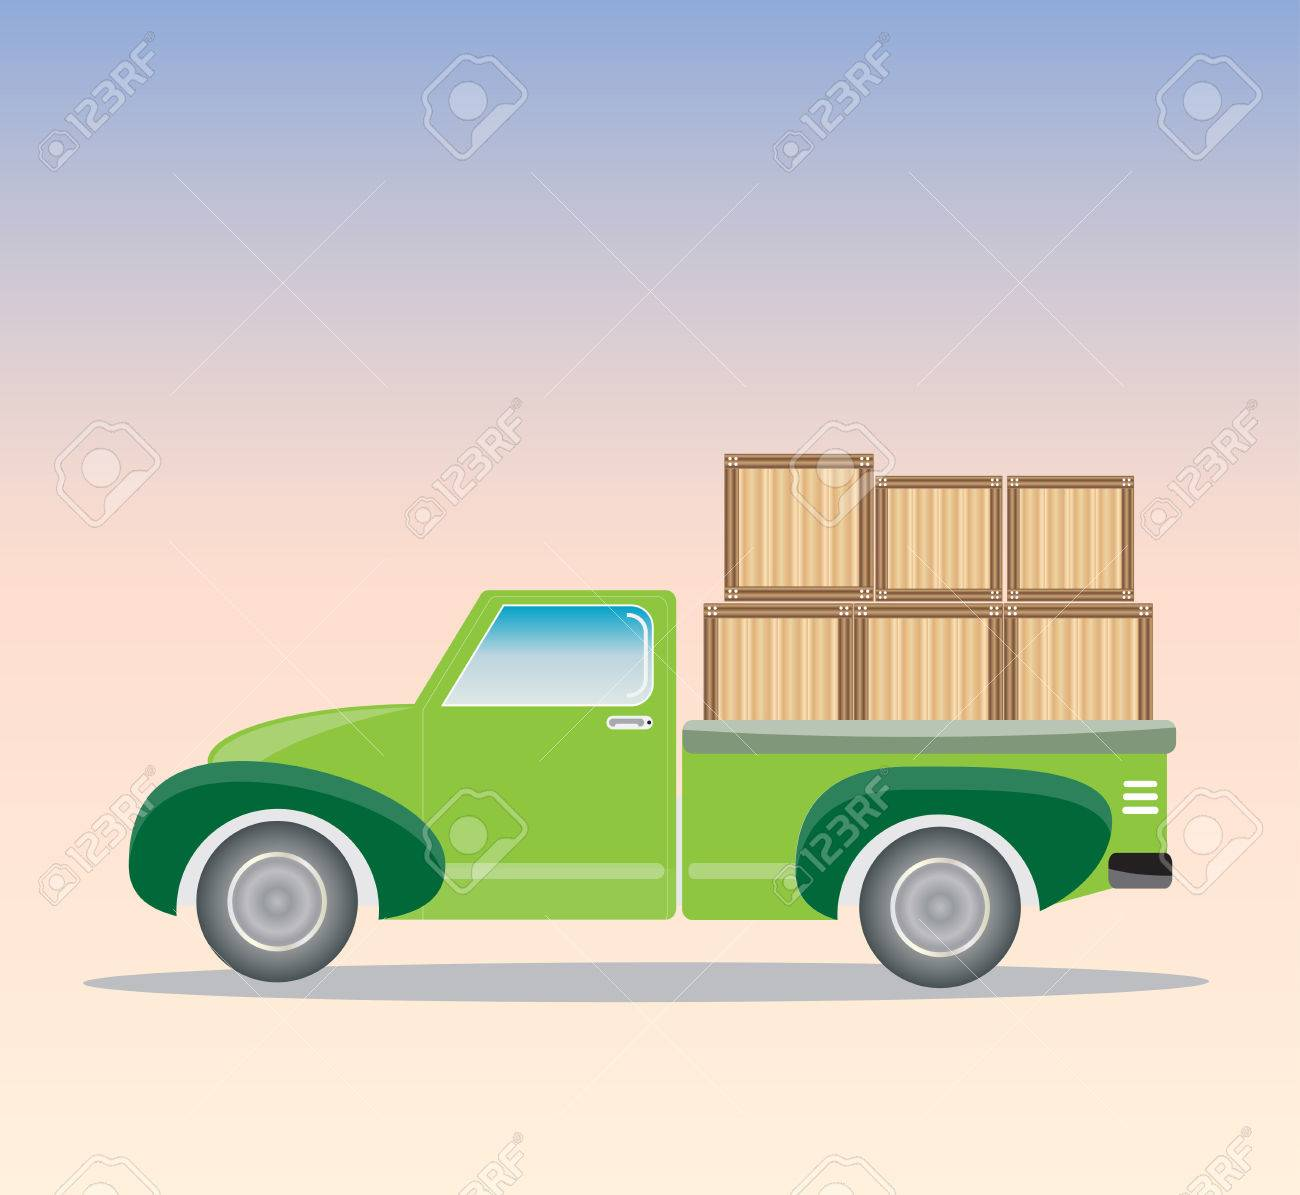 Side View Of Old Pick Up Truck With Wood Cargo Box Royalty Free ...